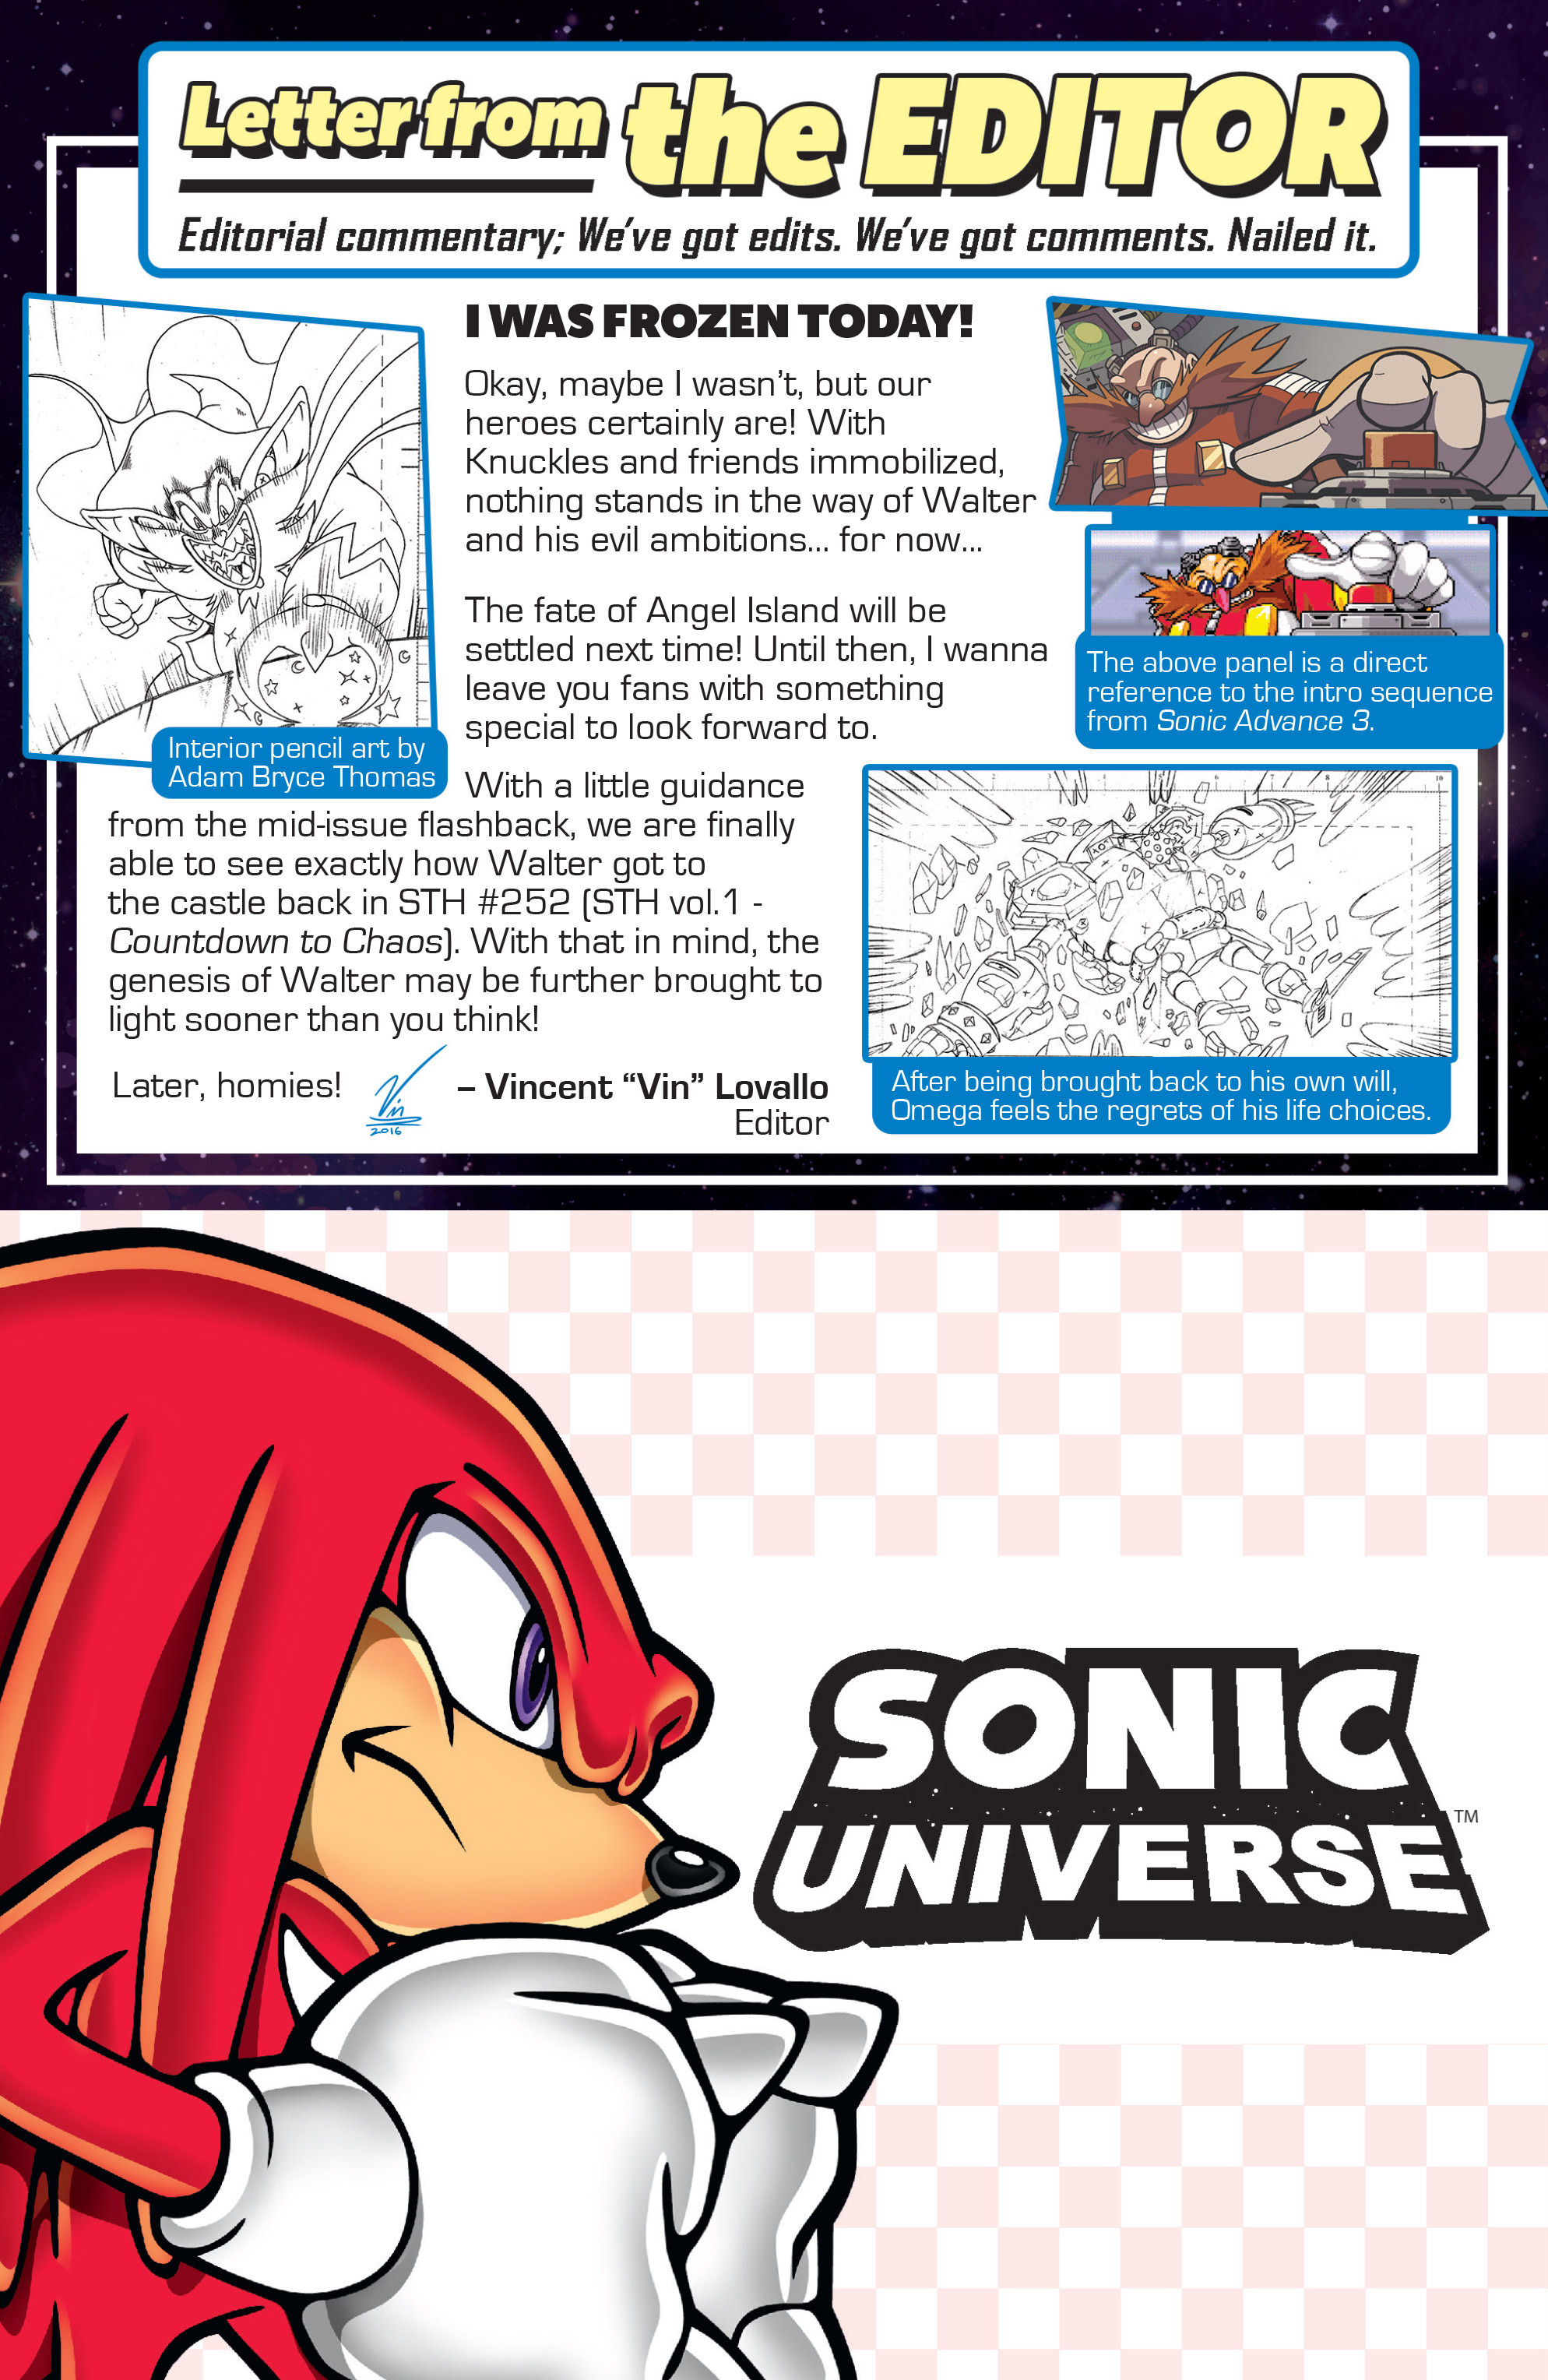 Sonic Universe #89 - Read Sonic Universe Issue #89 Page 23